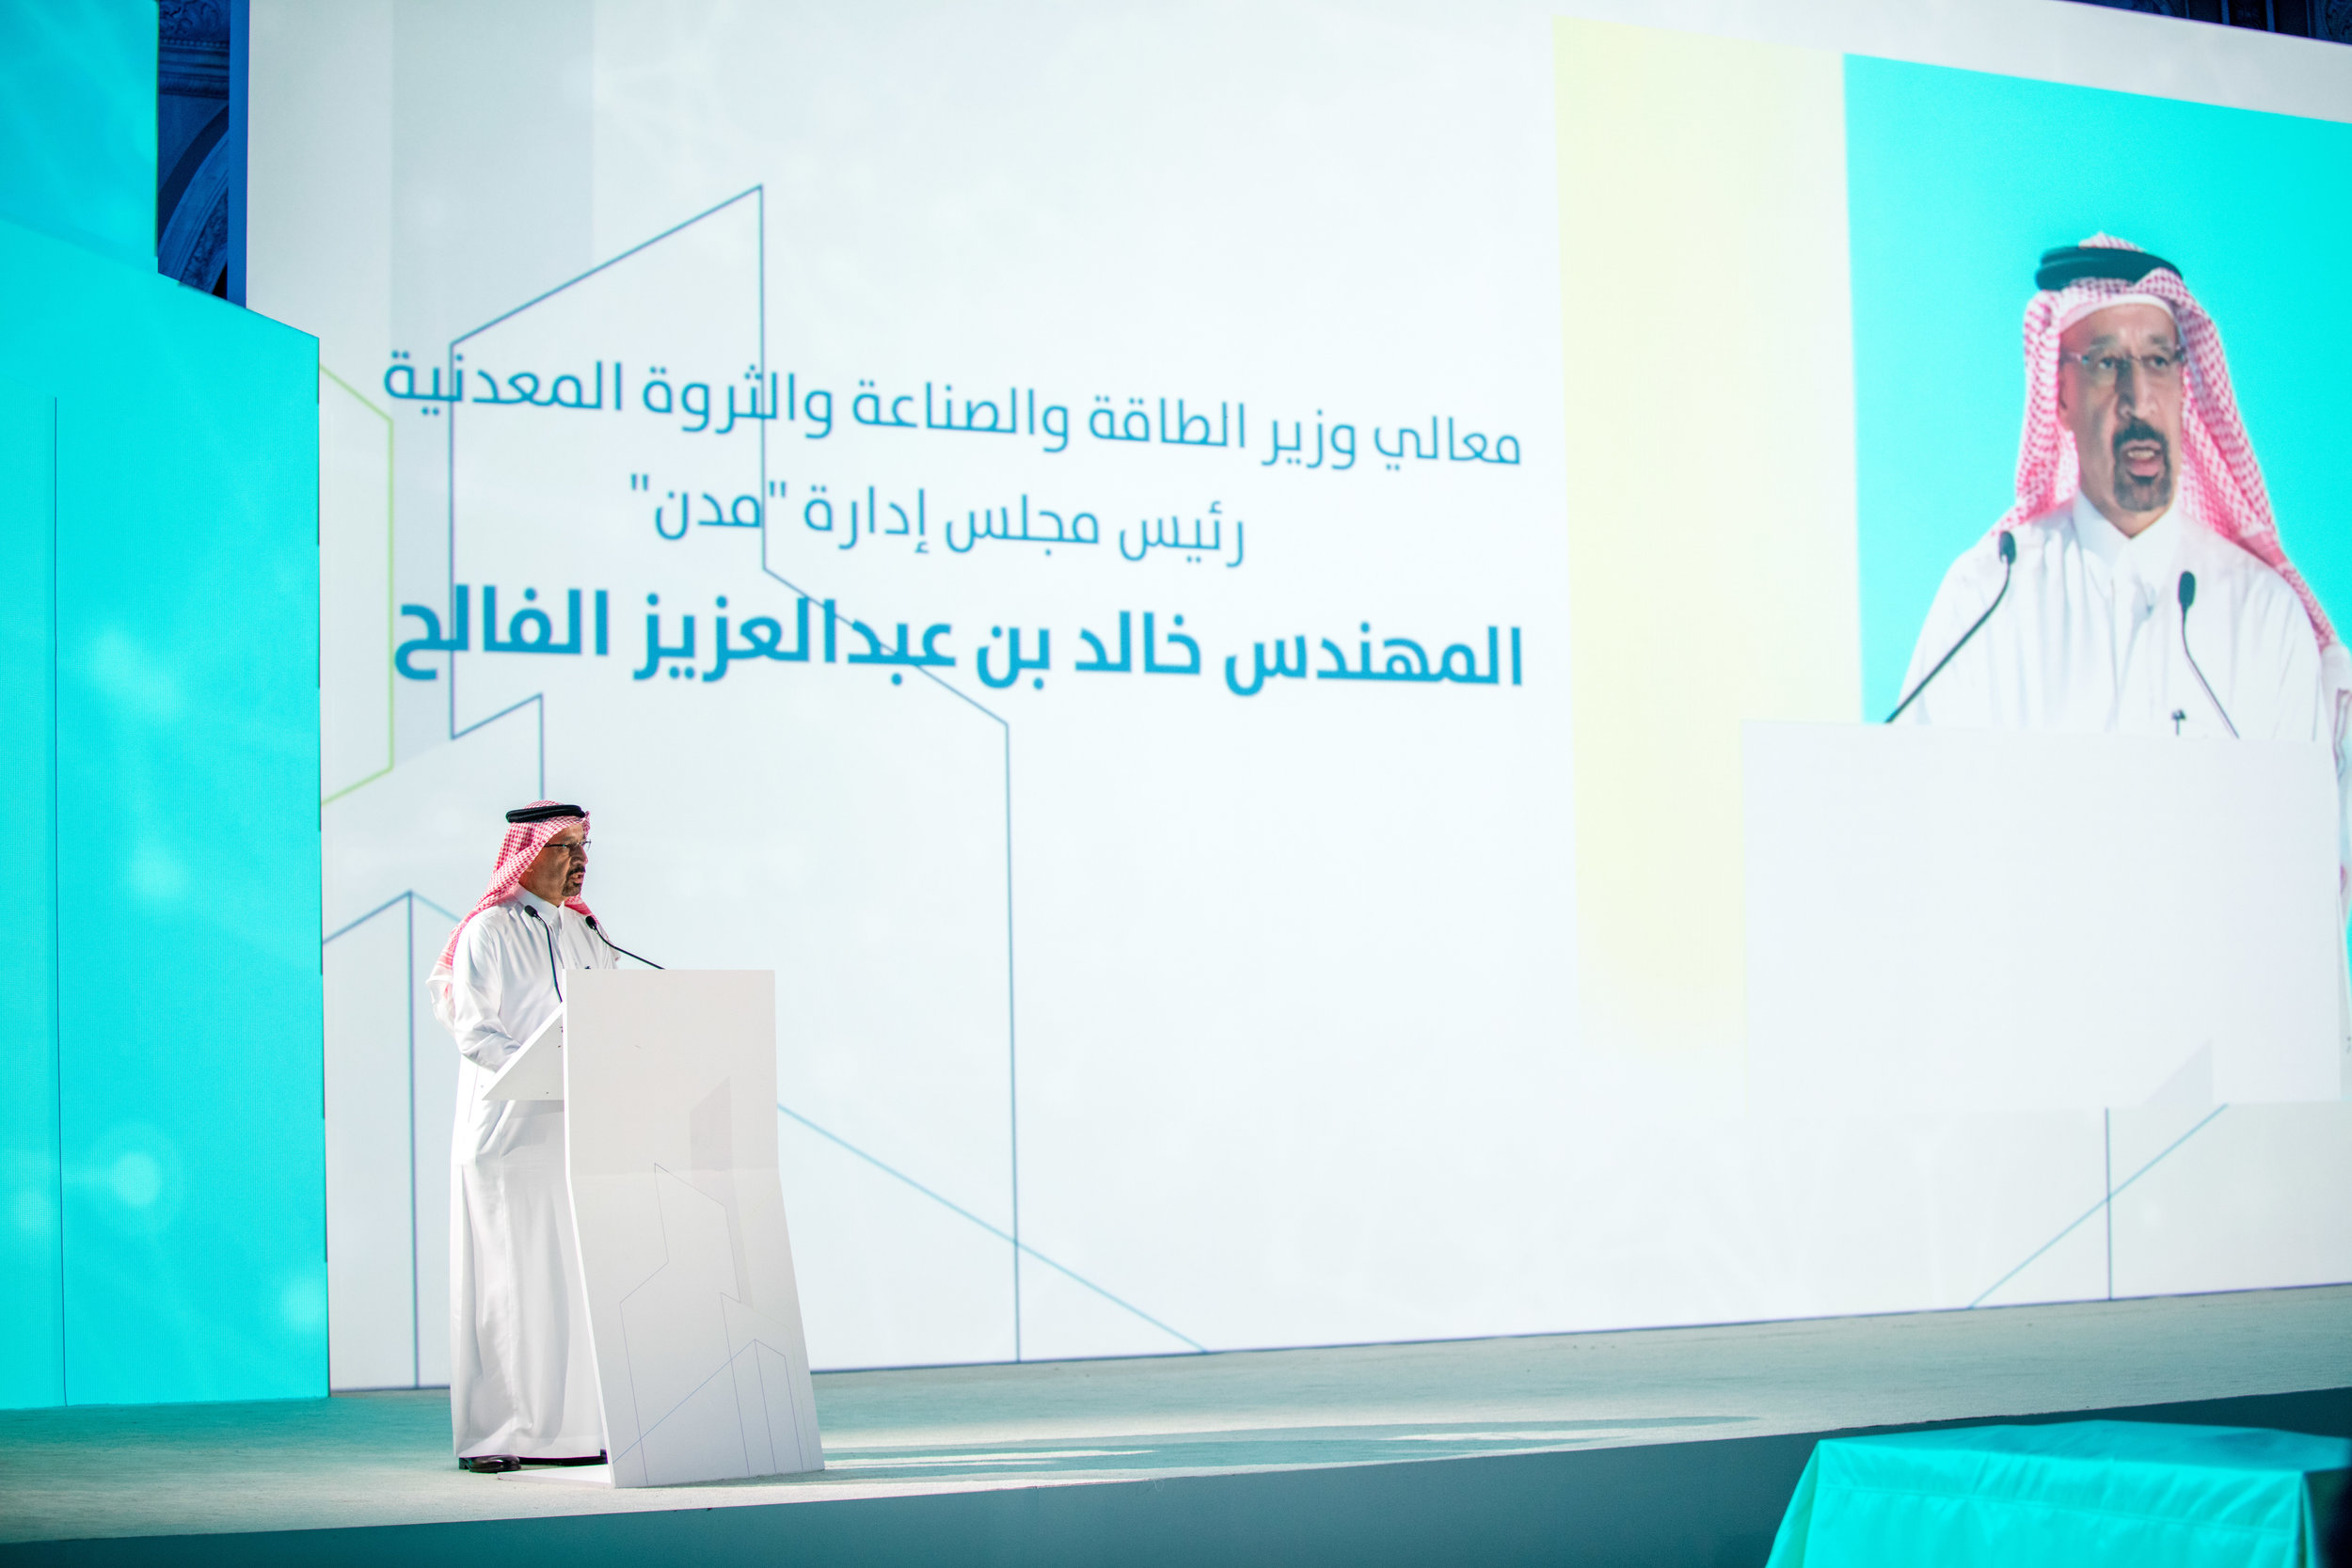 Khalid A. Al-Falih, Minister of Energy, Industry and Mineral Resources of Saudi Arabia and chairman of Saudi Aramco